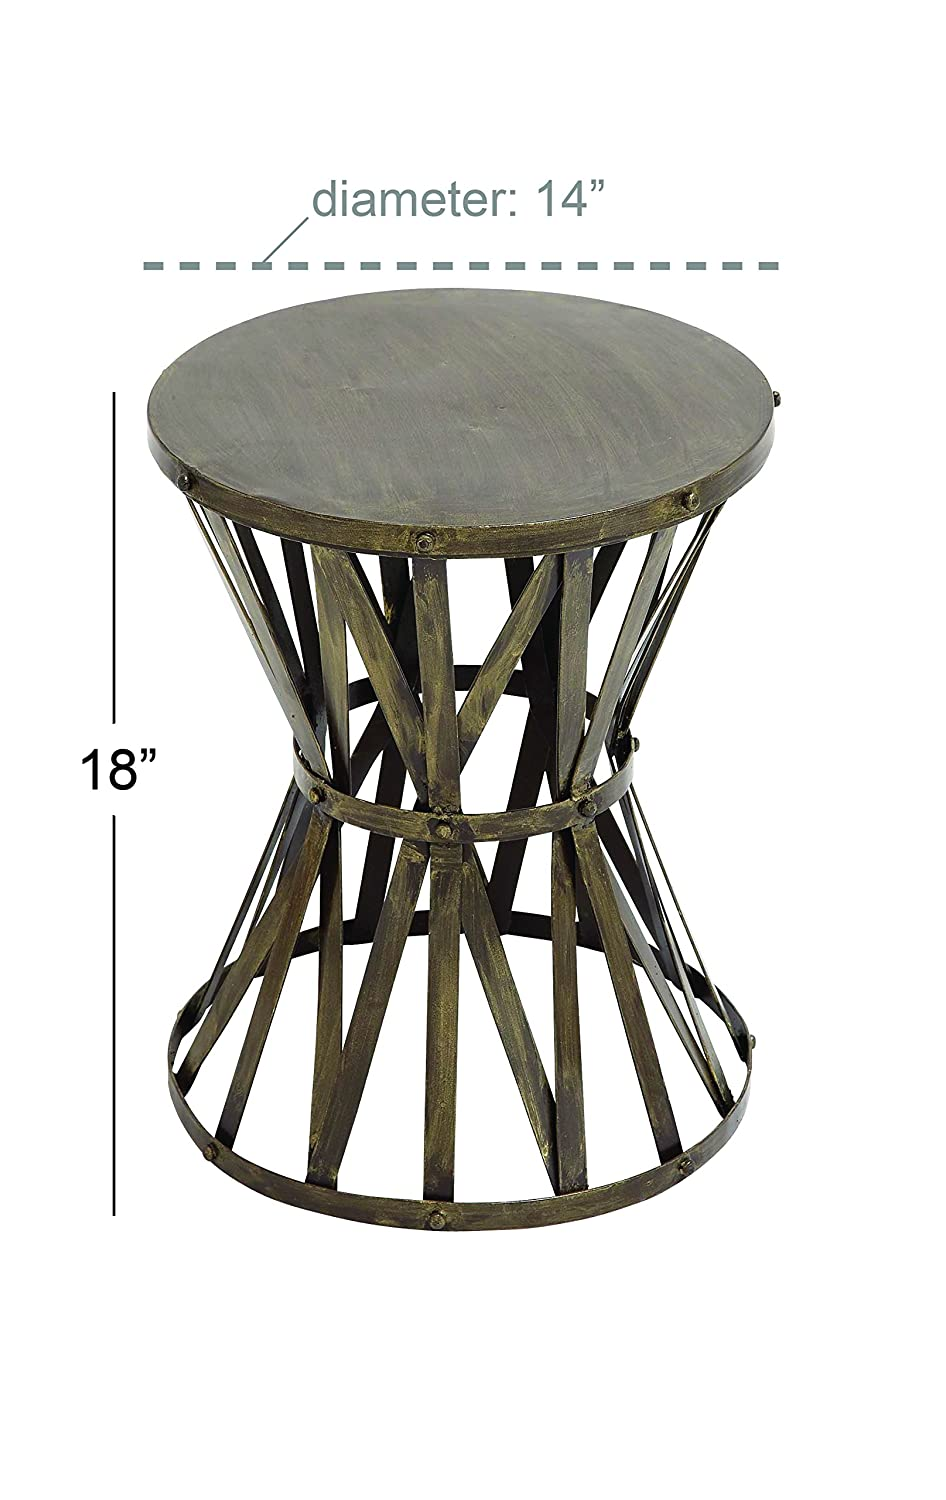 14 by 18-Inch Deco 79 Metal Accent Table